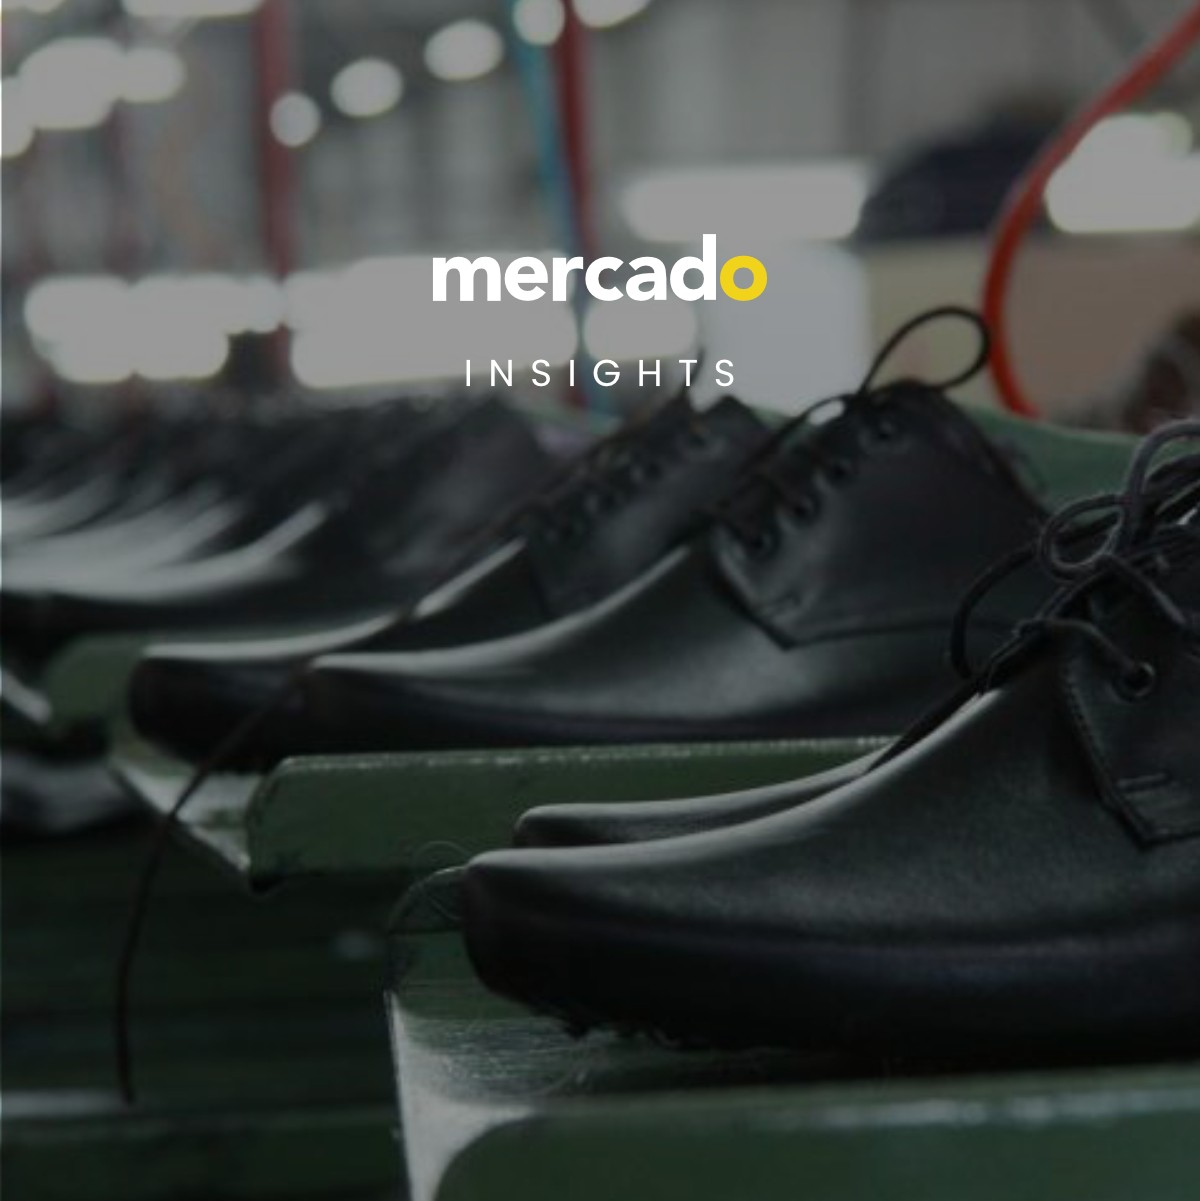 Mercado - What I Learned in Supply Chain This Week